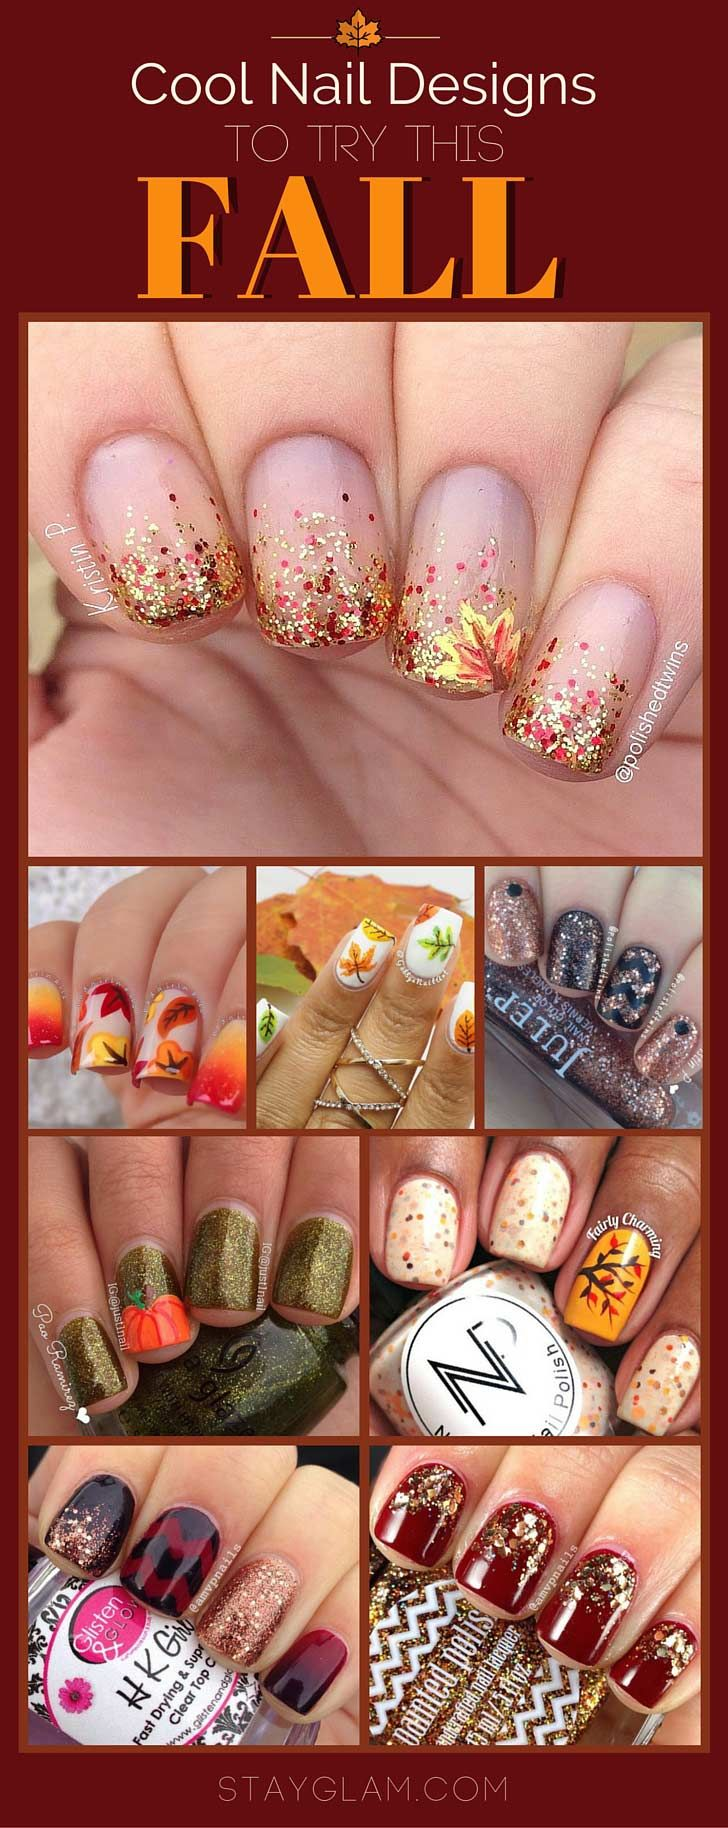 625 best Nails as in Fingers and Toes images on Pinterest | Nail ...